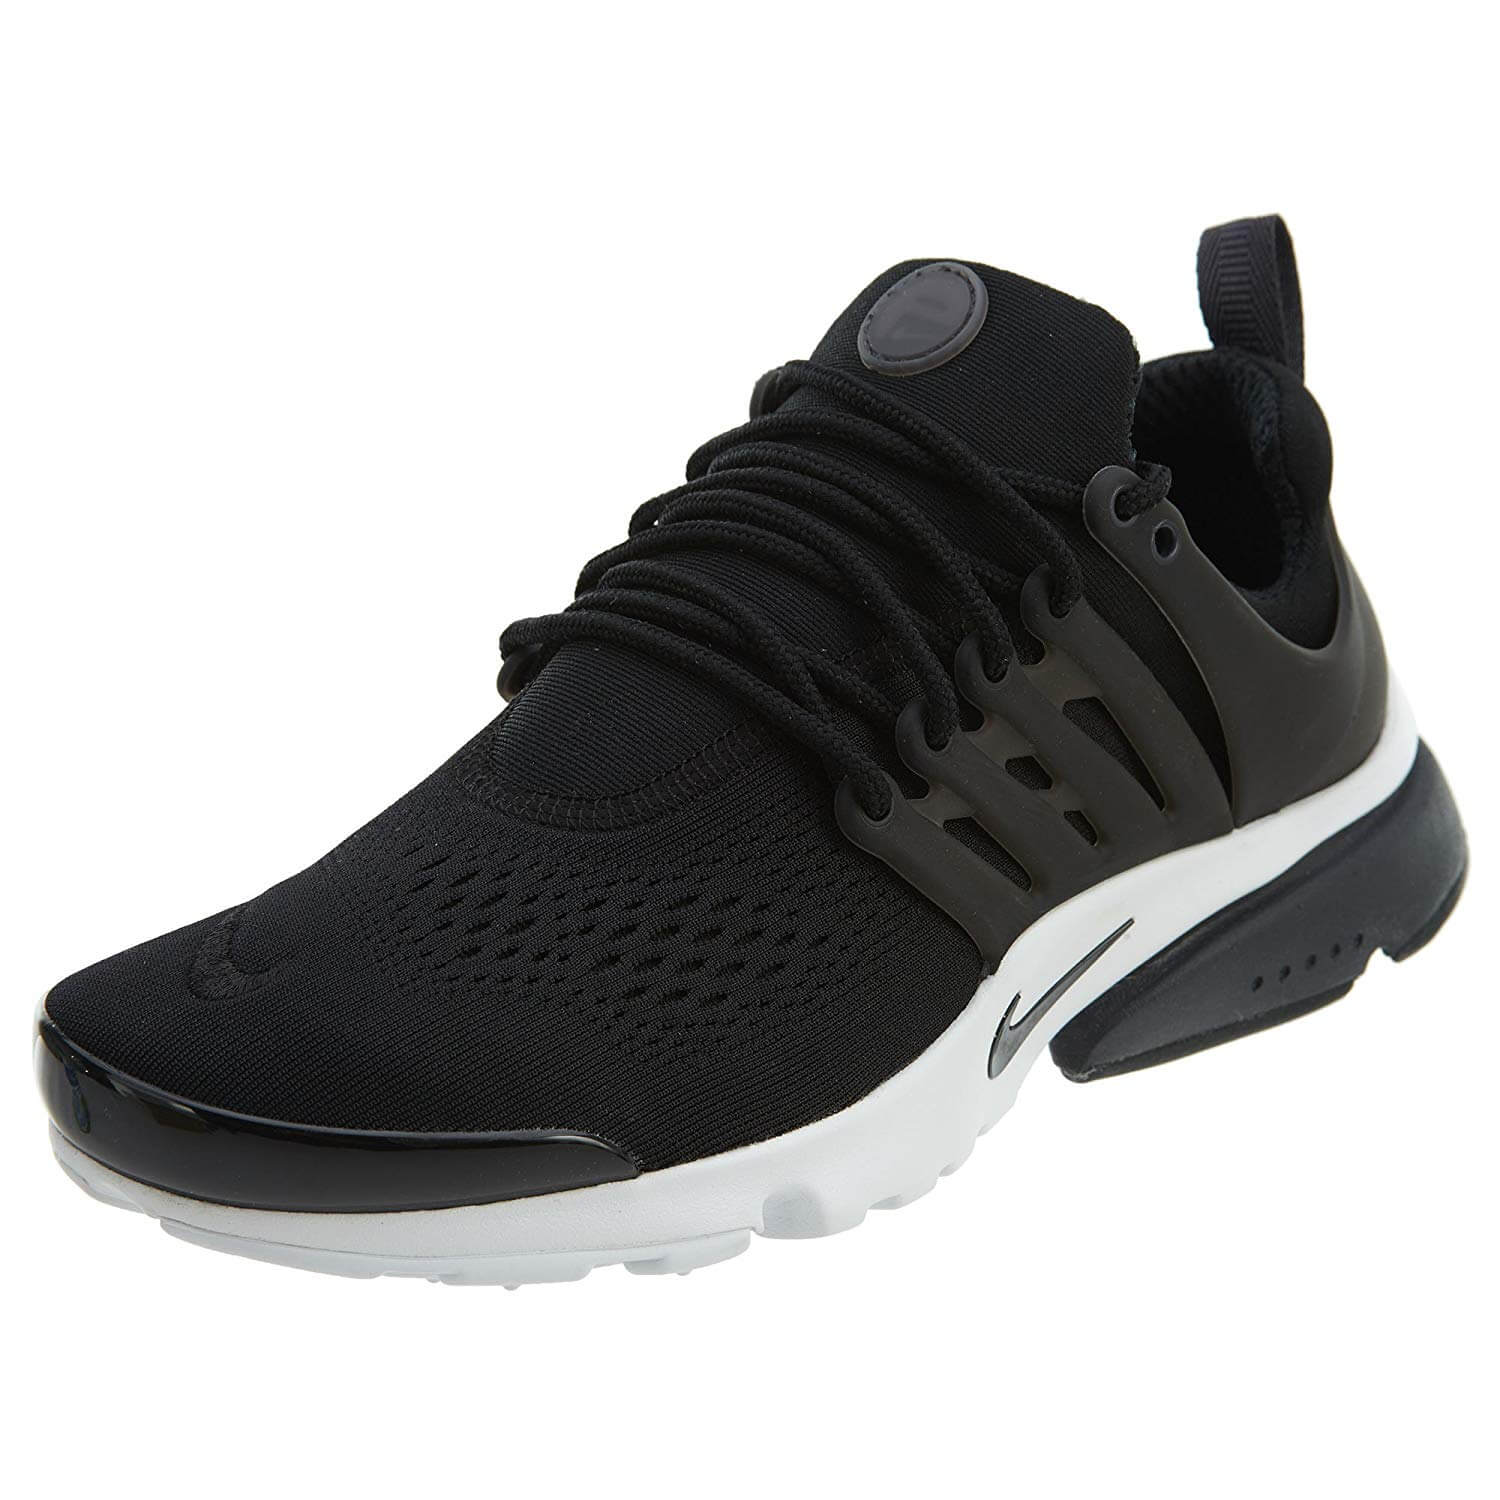 NIKE Air Presto Ultra BR in 2020 | Cute sneakers, Nike air